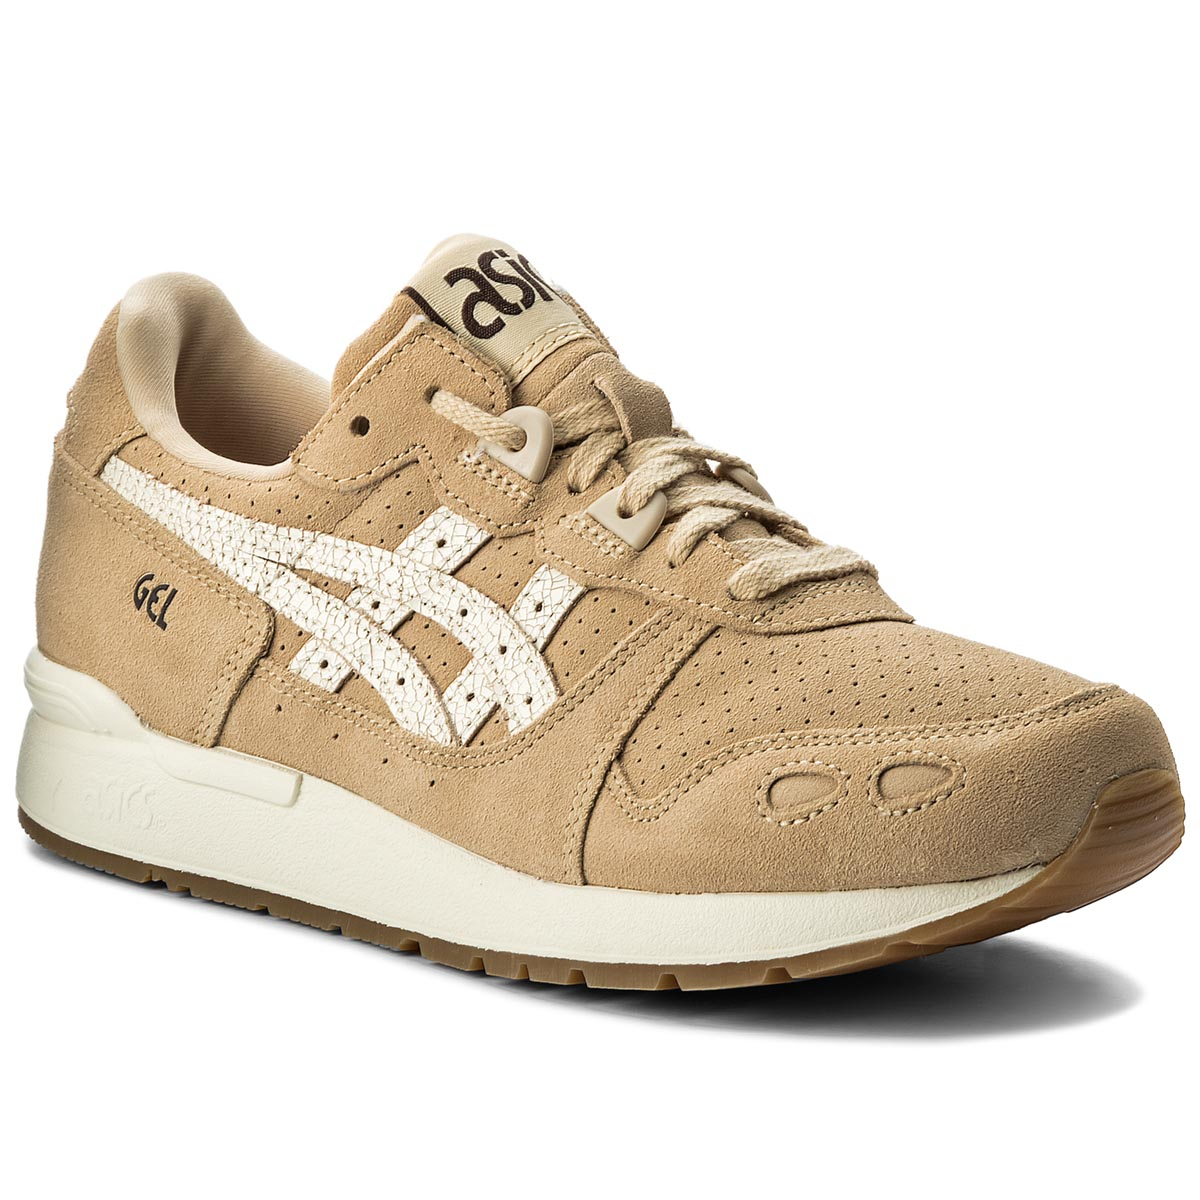 best website 354f1 af96a Sneakers ASICS TIGER Gel-Lyte H8B3L Marzipan Cream 0500